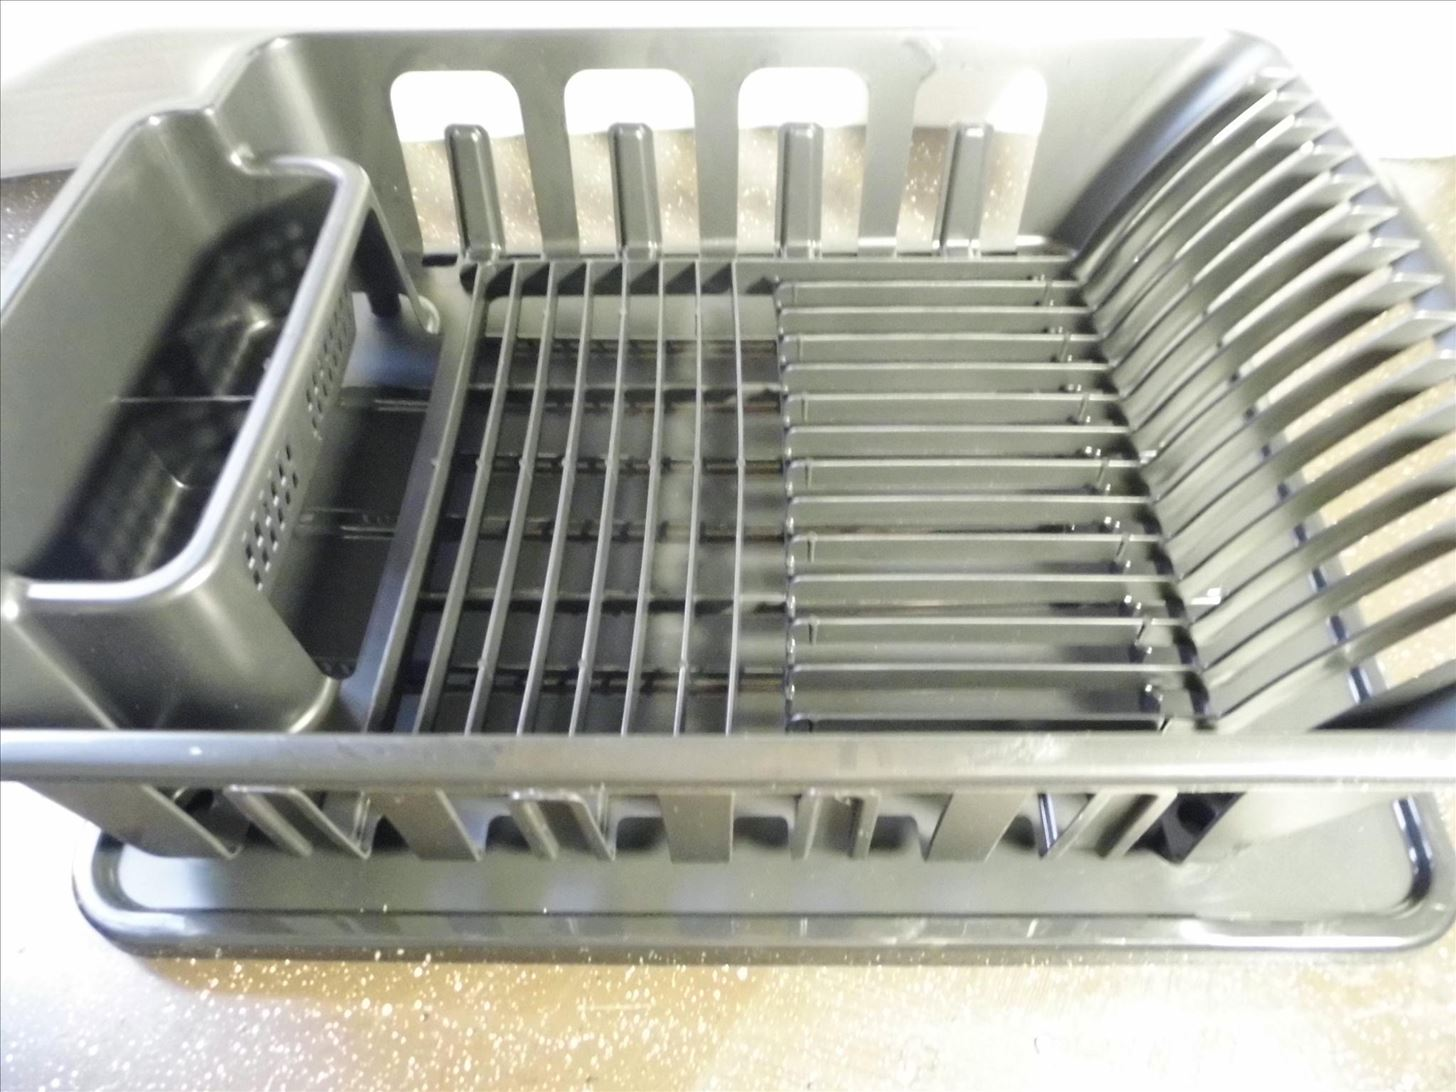 Draining Rack How To Slope Your Dish Rack Pan For Perfect Draining